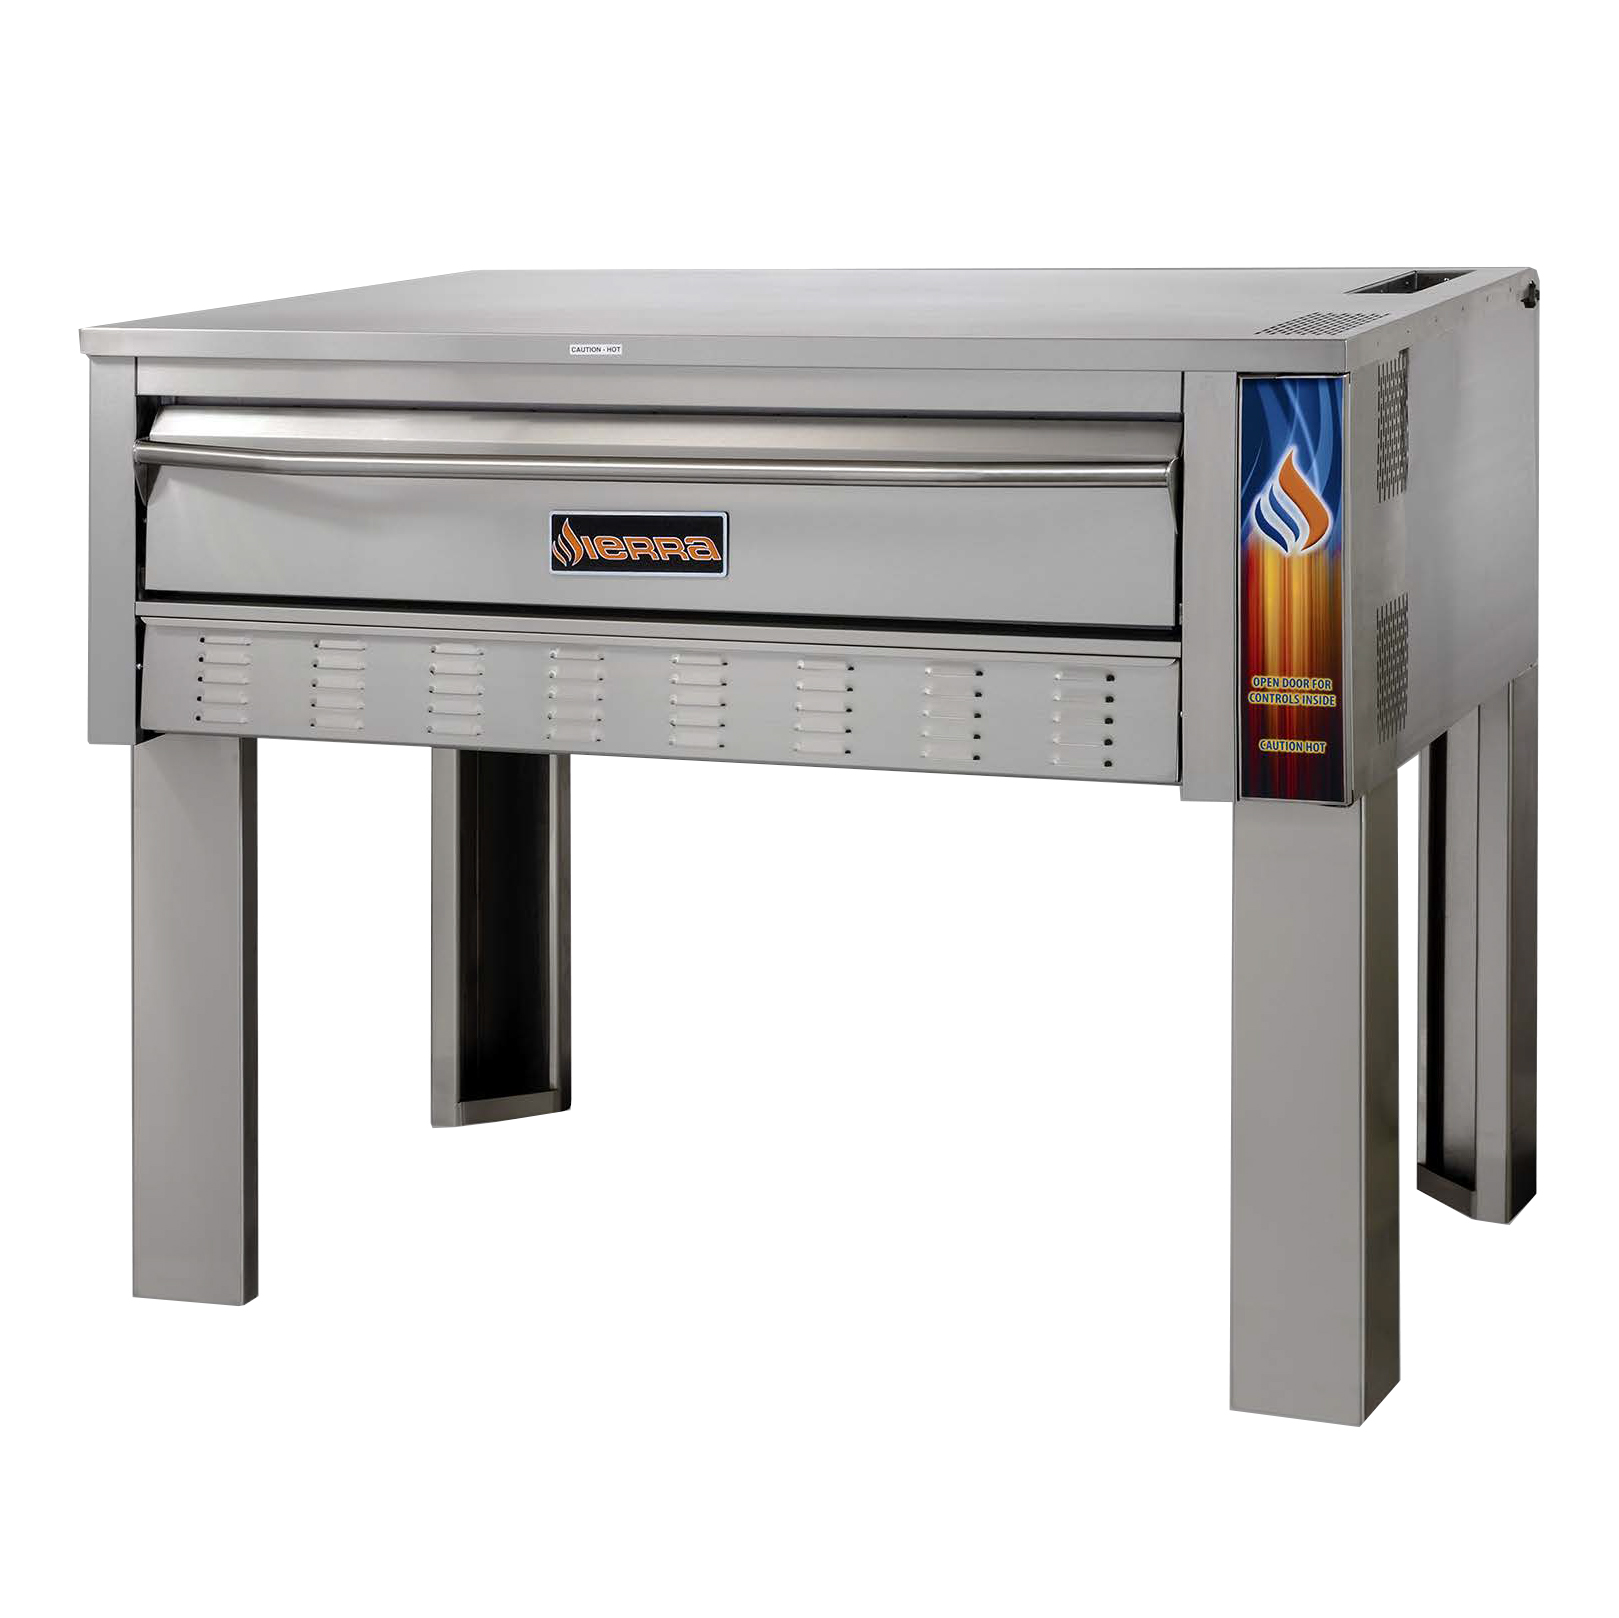 MVP SRPO-72G pizza bake oven, deck-type, gas